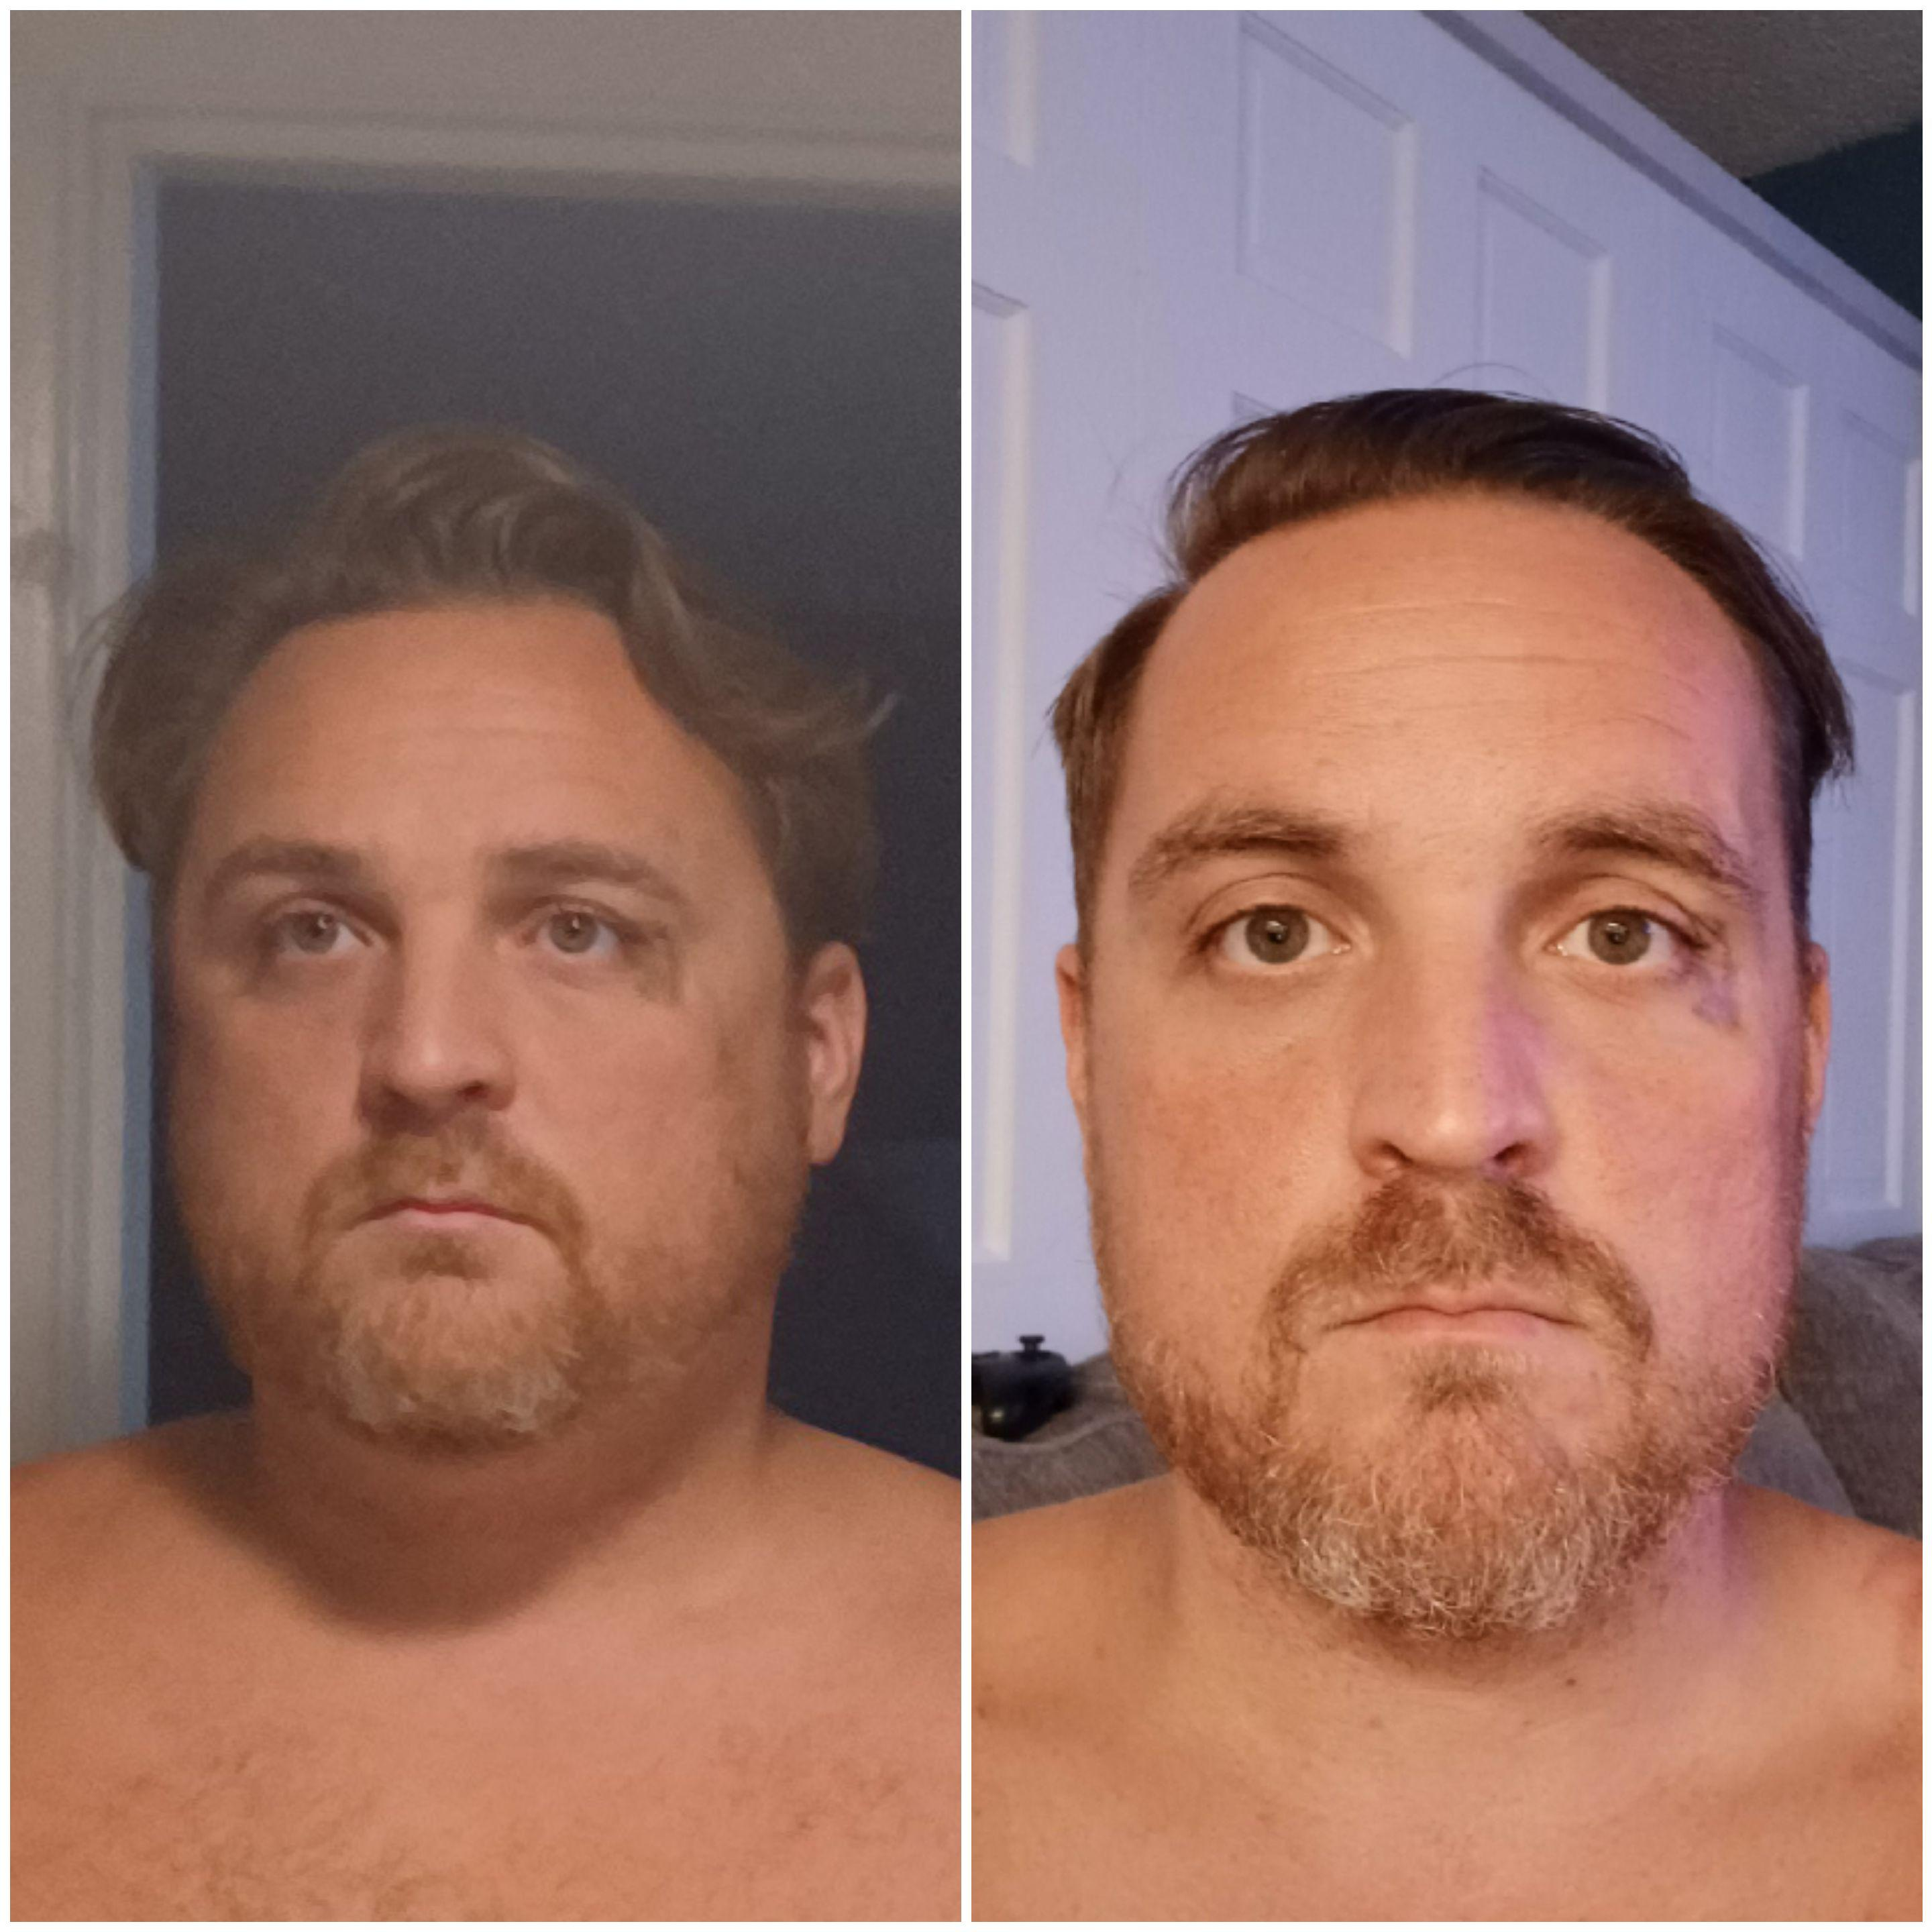 6 foot Male Before and After 29 lbs Weight Loss 265 lbs to 236 lbs